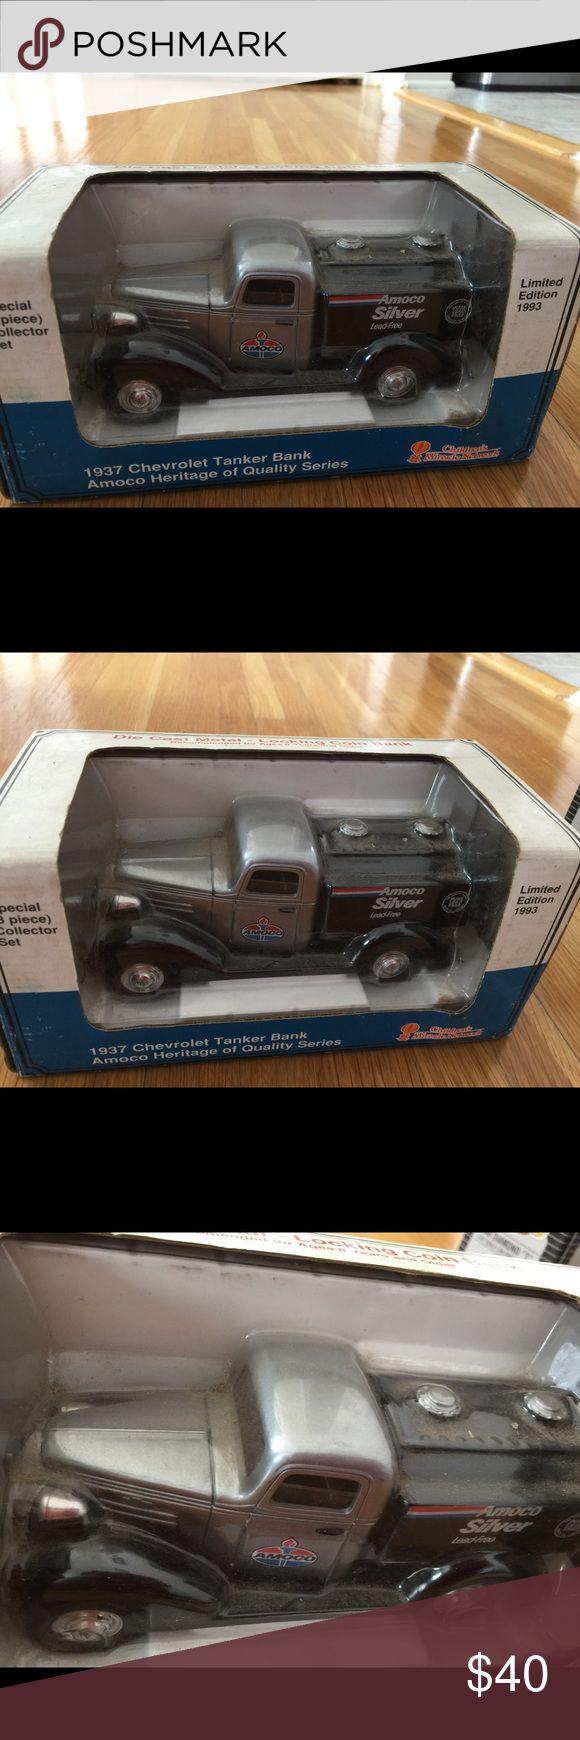 """CHEVROLET  DIE CAST METAL LOCKING COIN BANK CHILDREN""""S MIRACLE NETWORK!1937 CHEVROLET TANKER BANK AMOCO HERITAGE OF QALITY SERIES  DIE CAST METAL LIMITED EDITION1993. PREOWNED Its good condition bay has shelf wear from years of storage production. DIE CAST Other"""